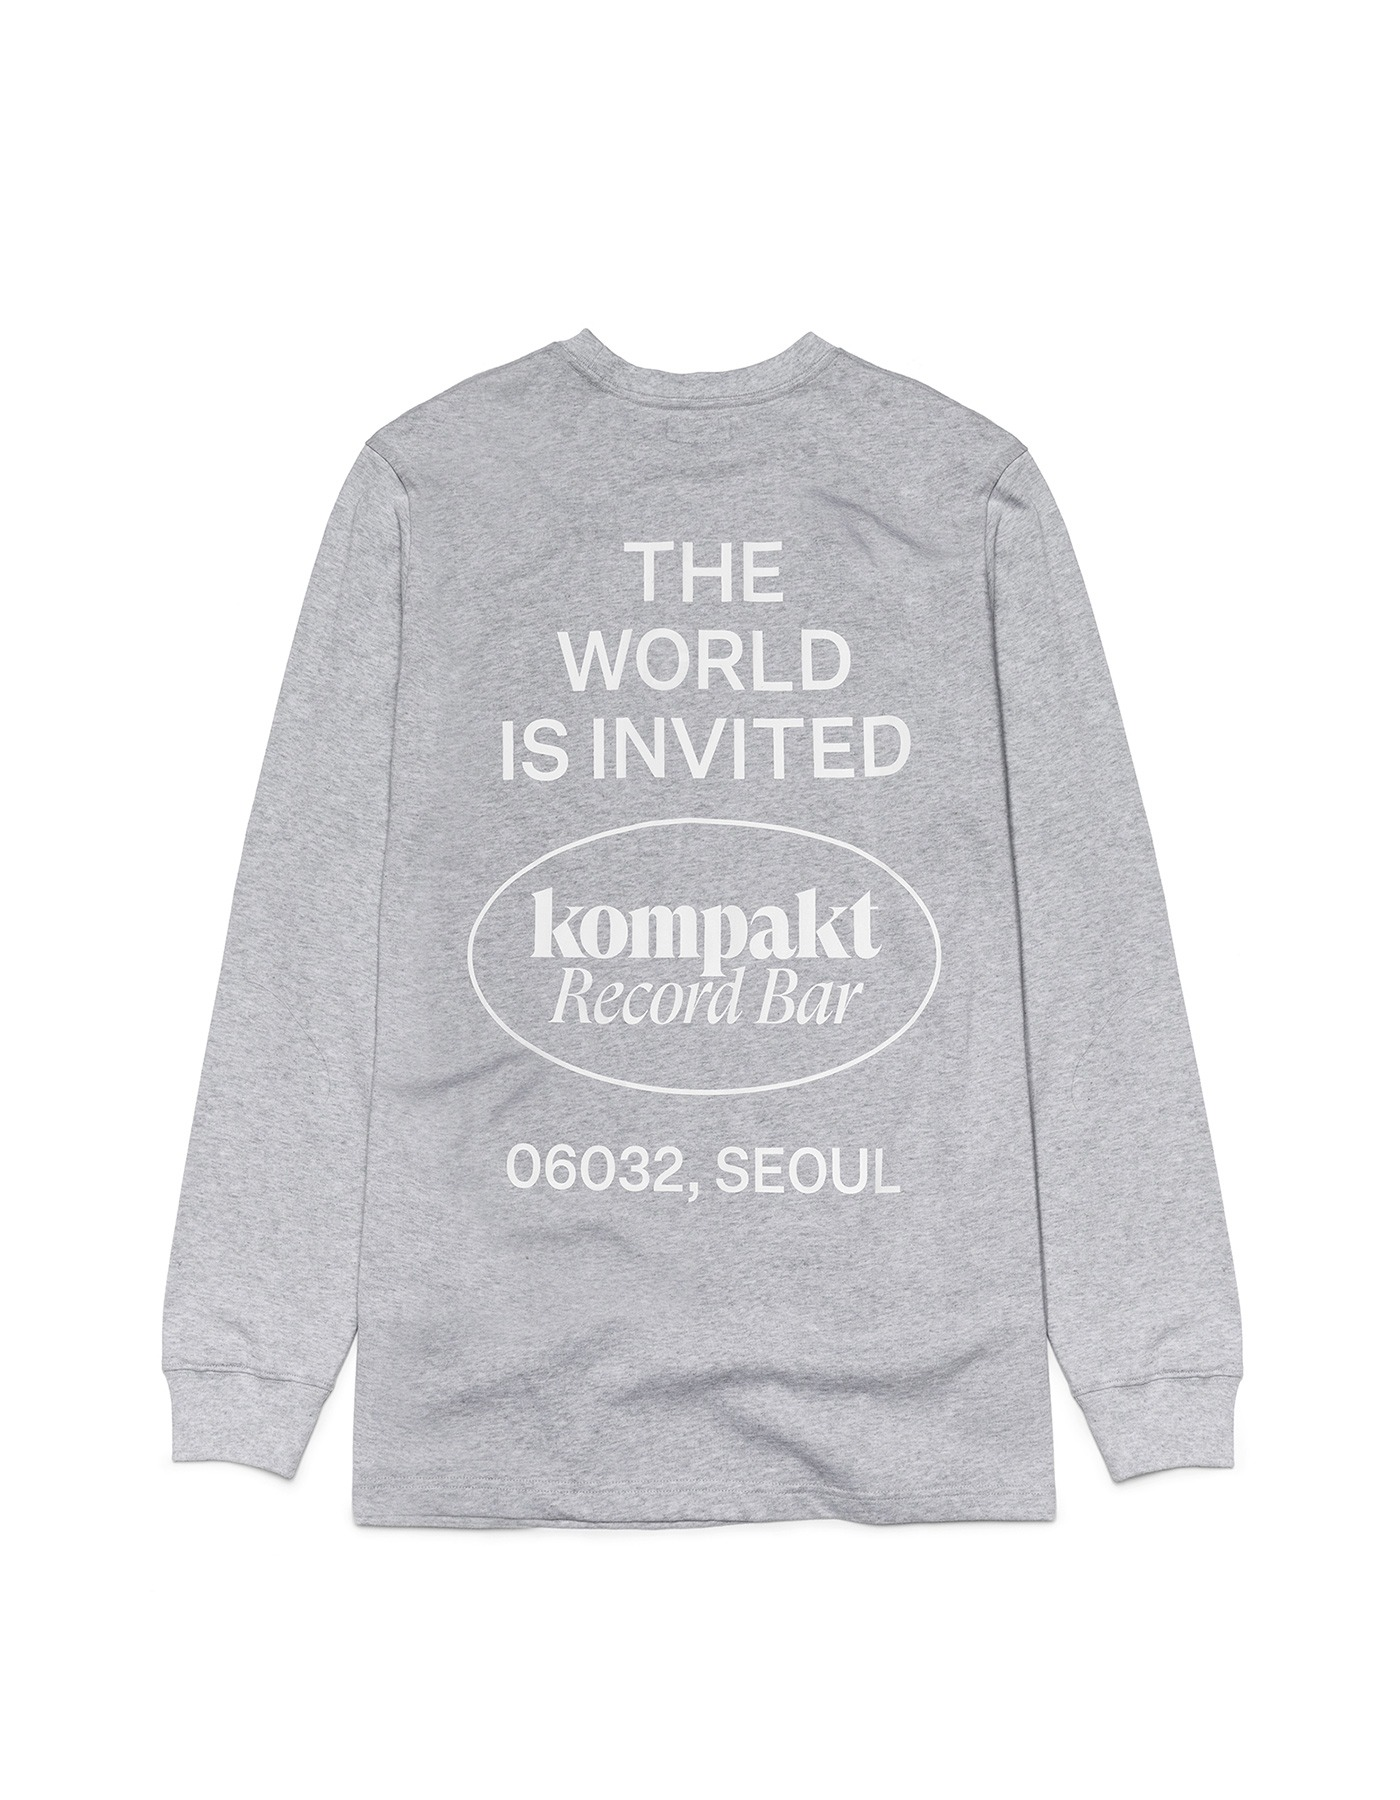 The World Is Invited L/S - Grey/White